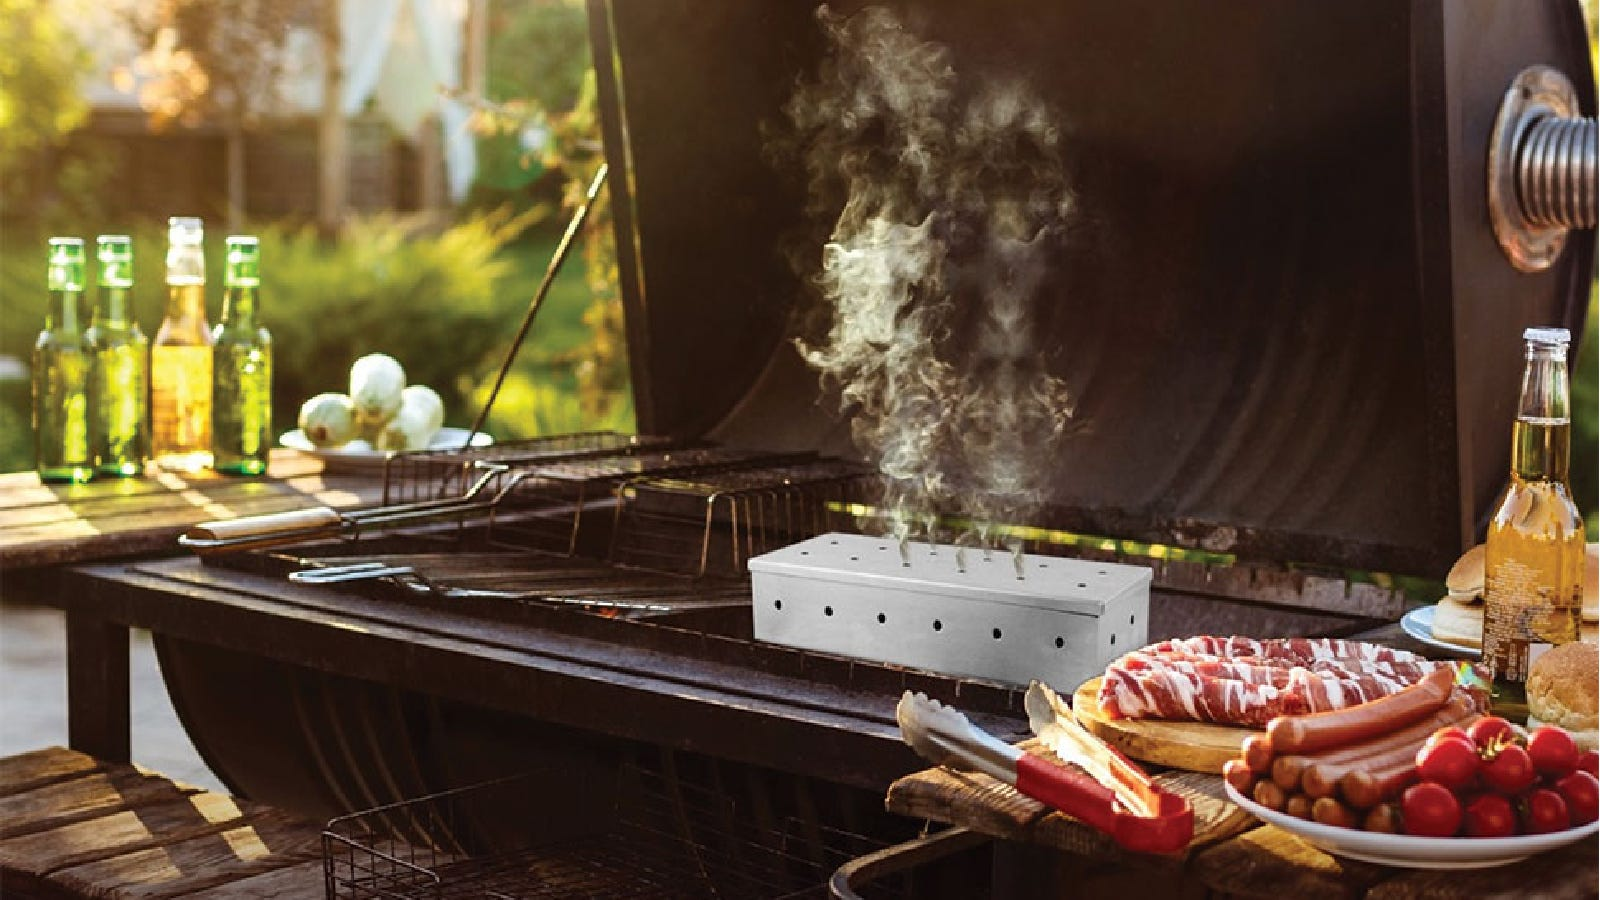 A Kaluns smoker box full in action on a grill smoking with sausage and other ingredients nearby.